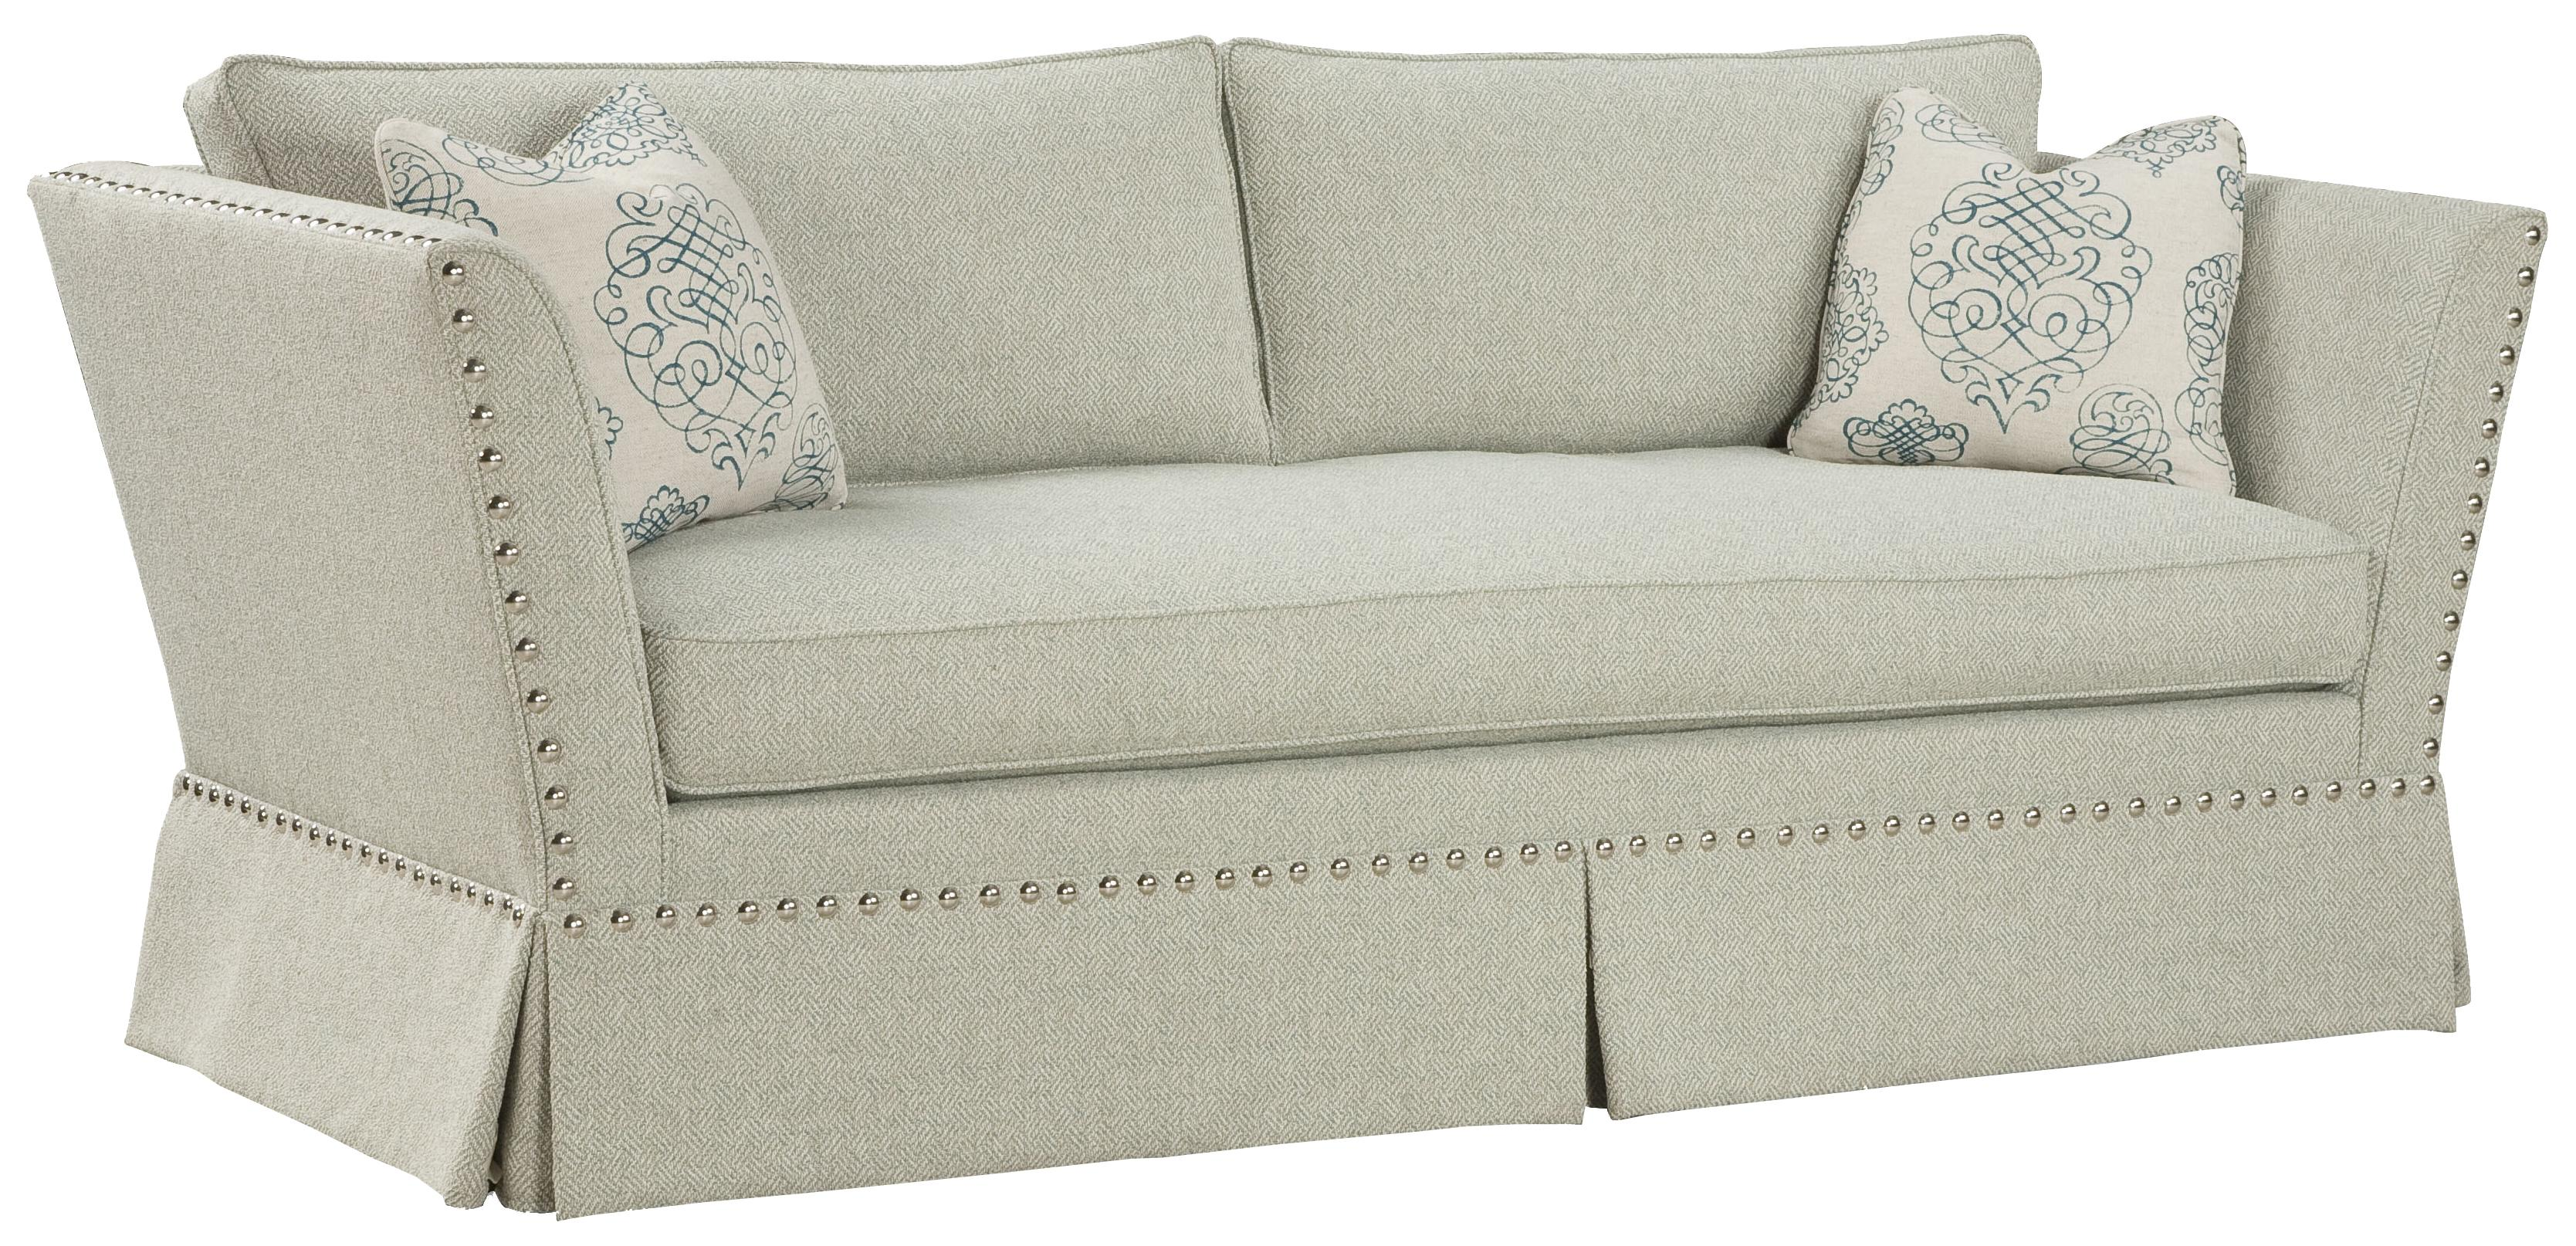 Incroyable Fairfield Sofa Accents Unique Accent Sofa In Flared Arm Style   Item  Number: 3732